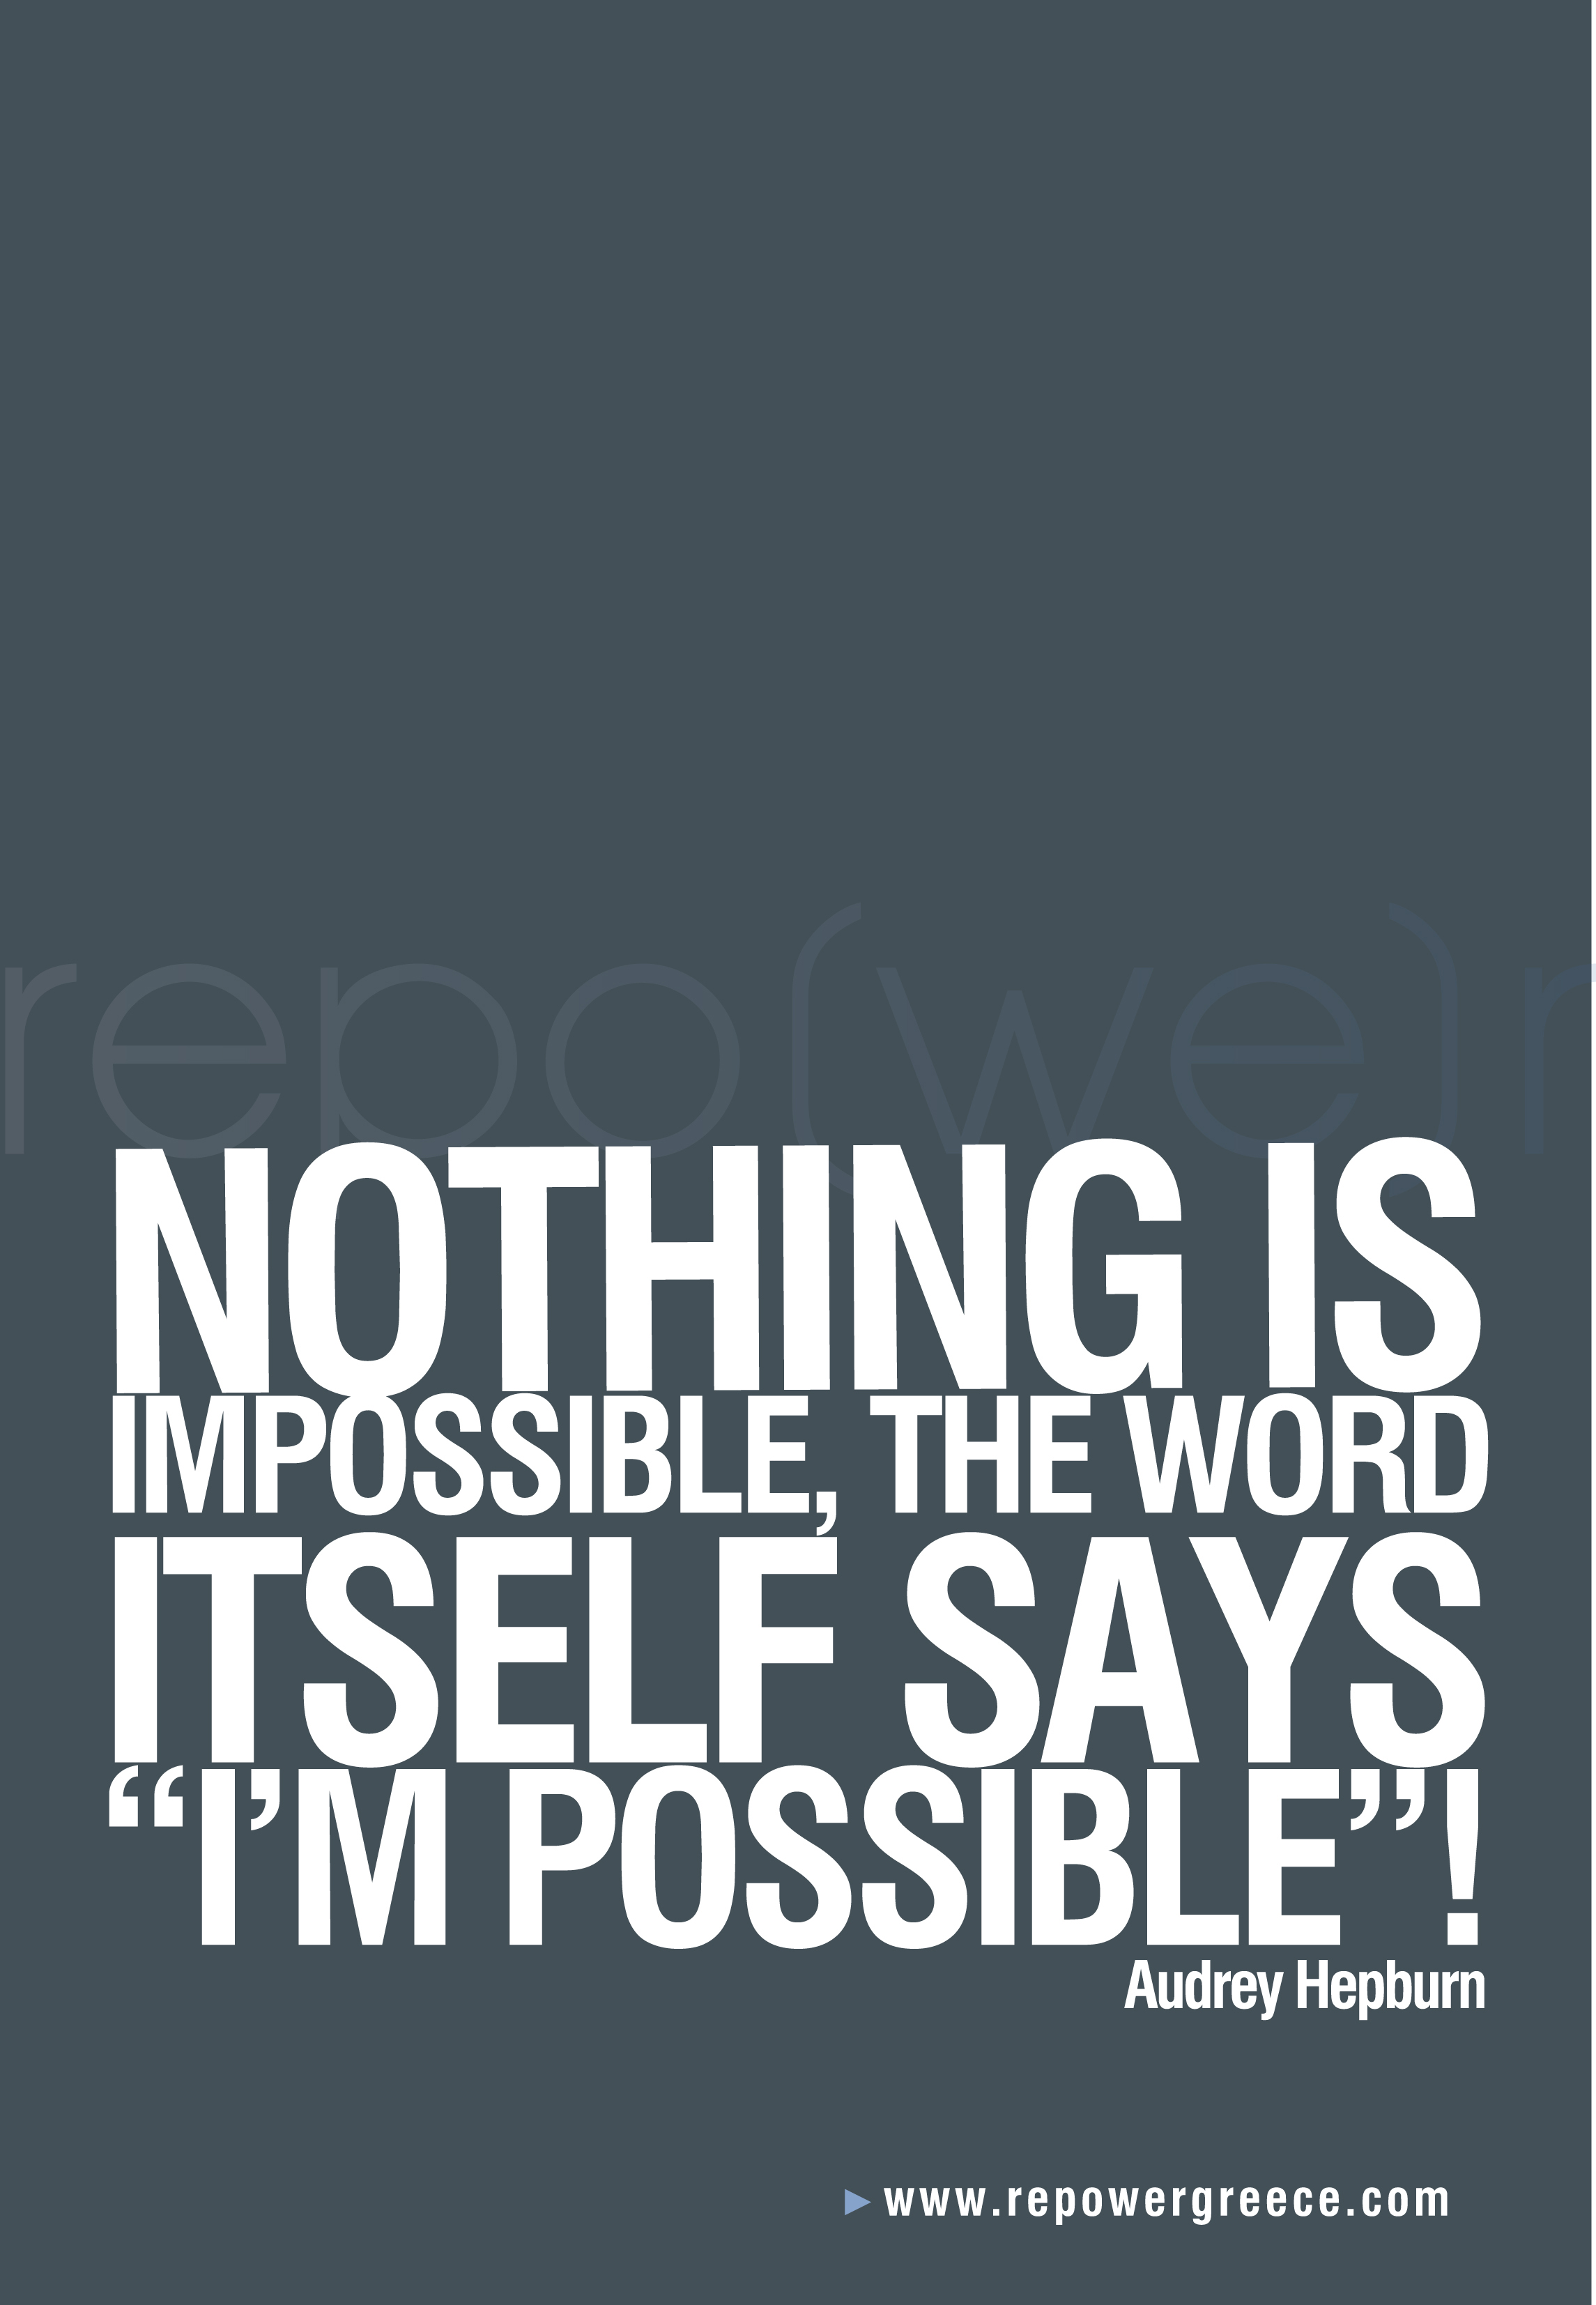 nothing is impossible quotes quotesgram nothing is impossible quotes